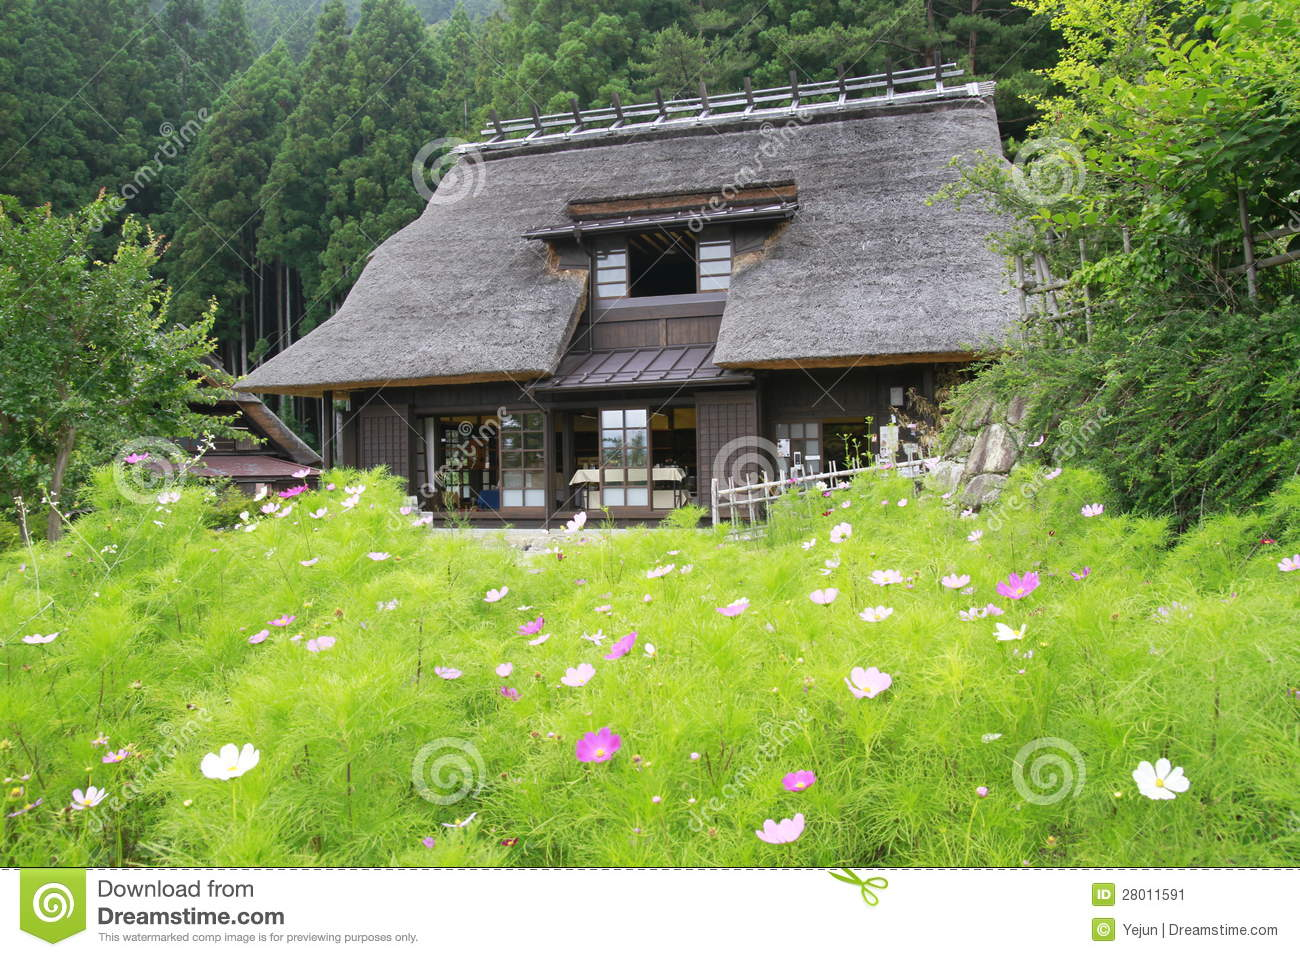 Clipart Images House Traditional Style Japanese Country House Stock Image